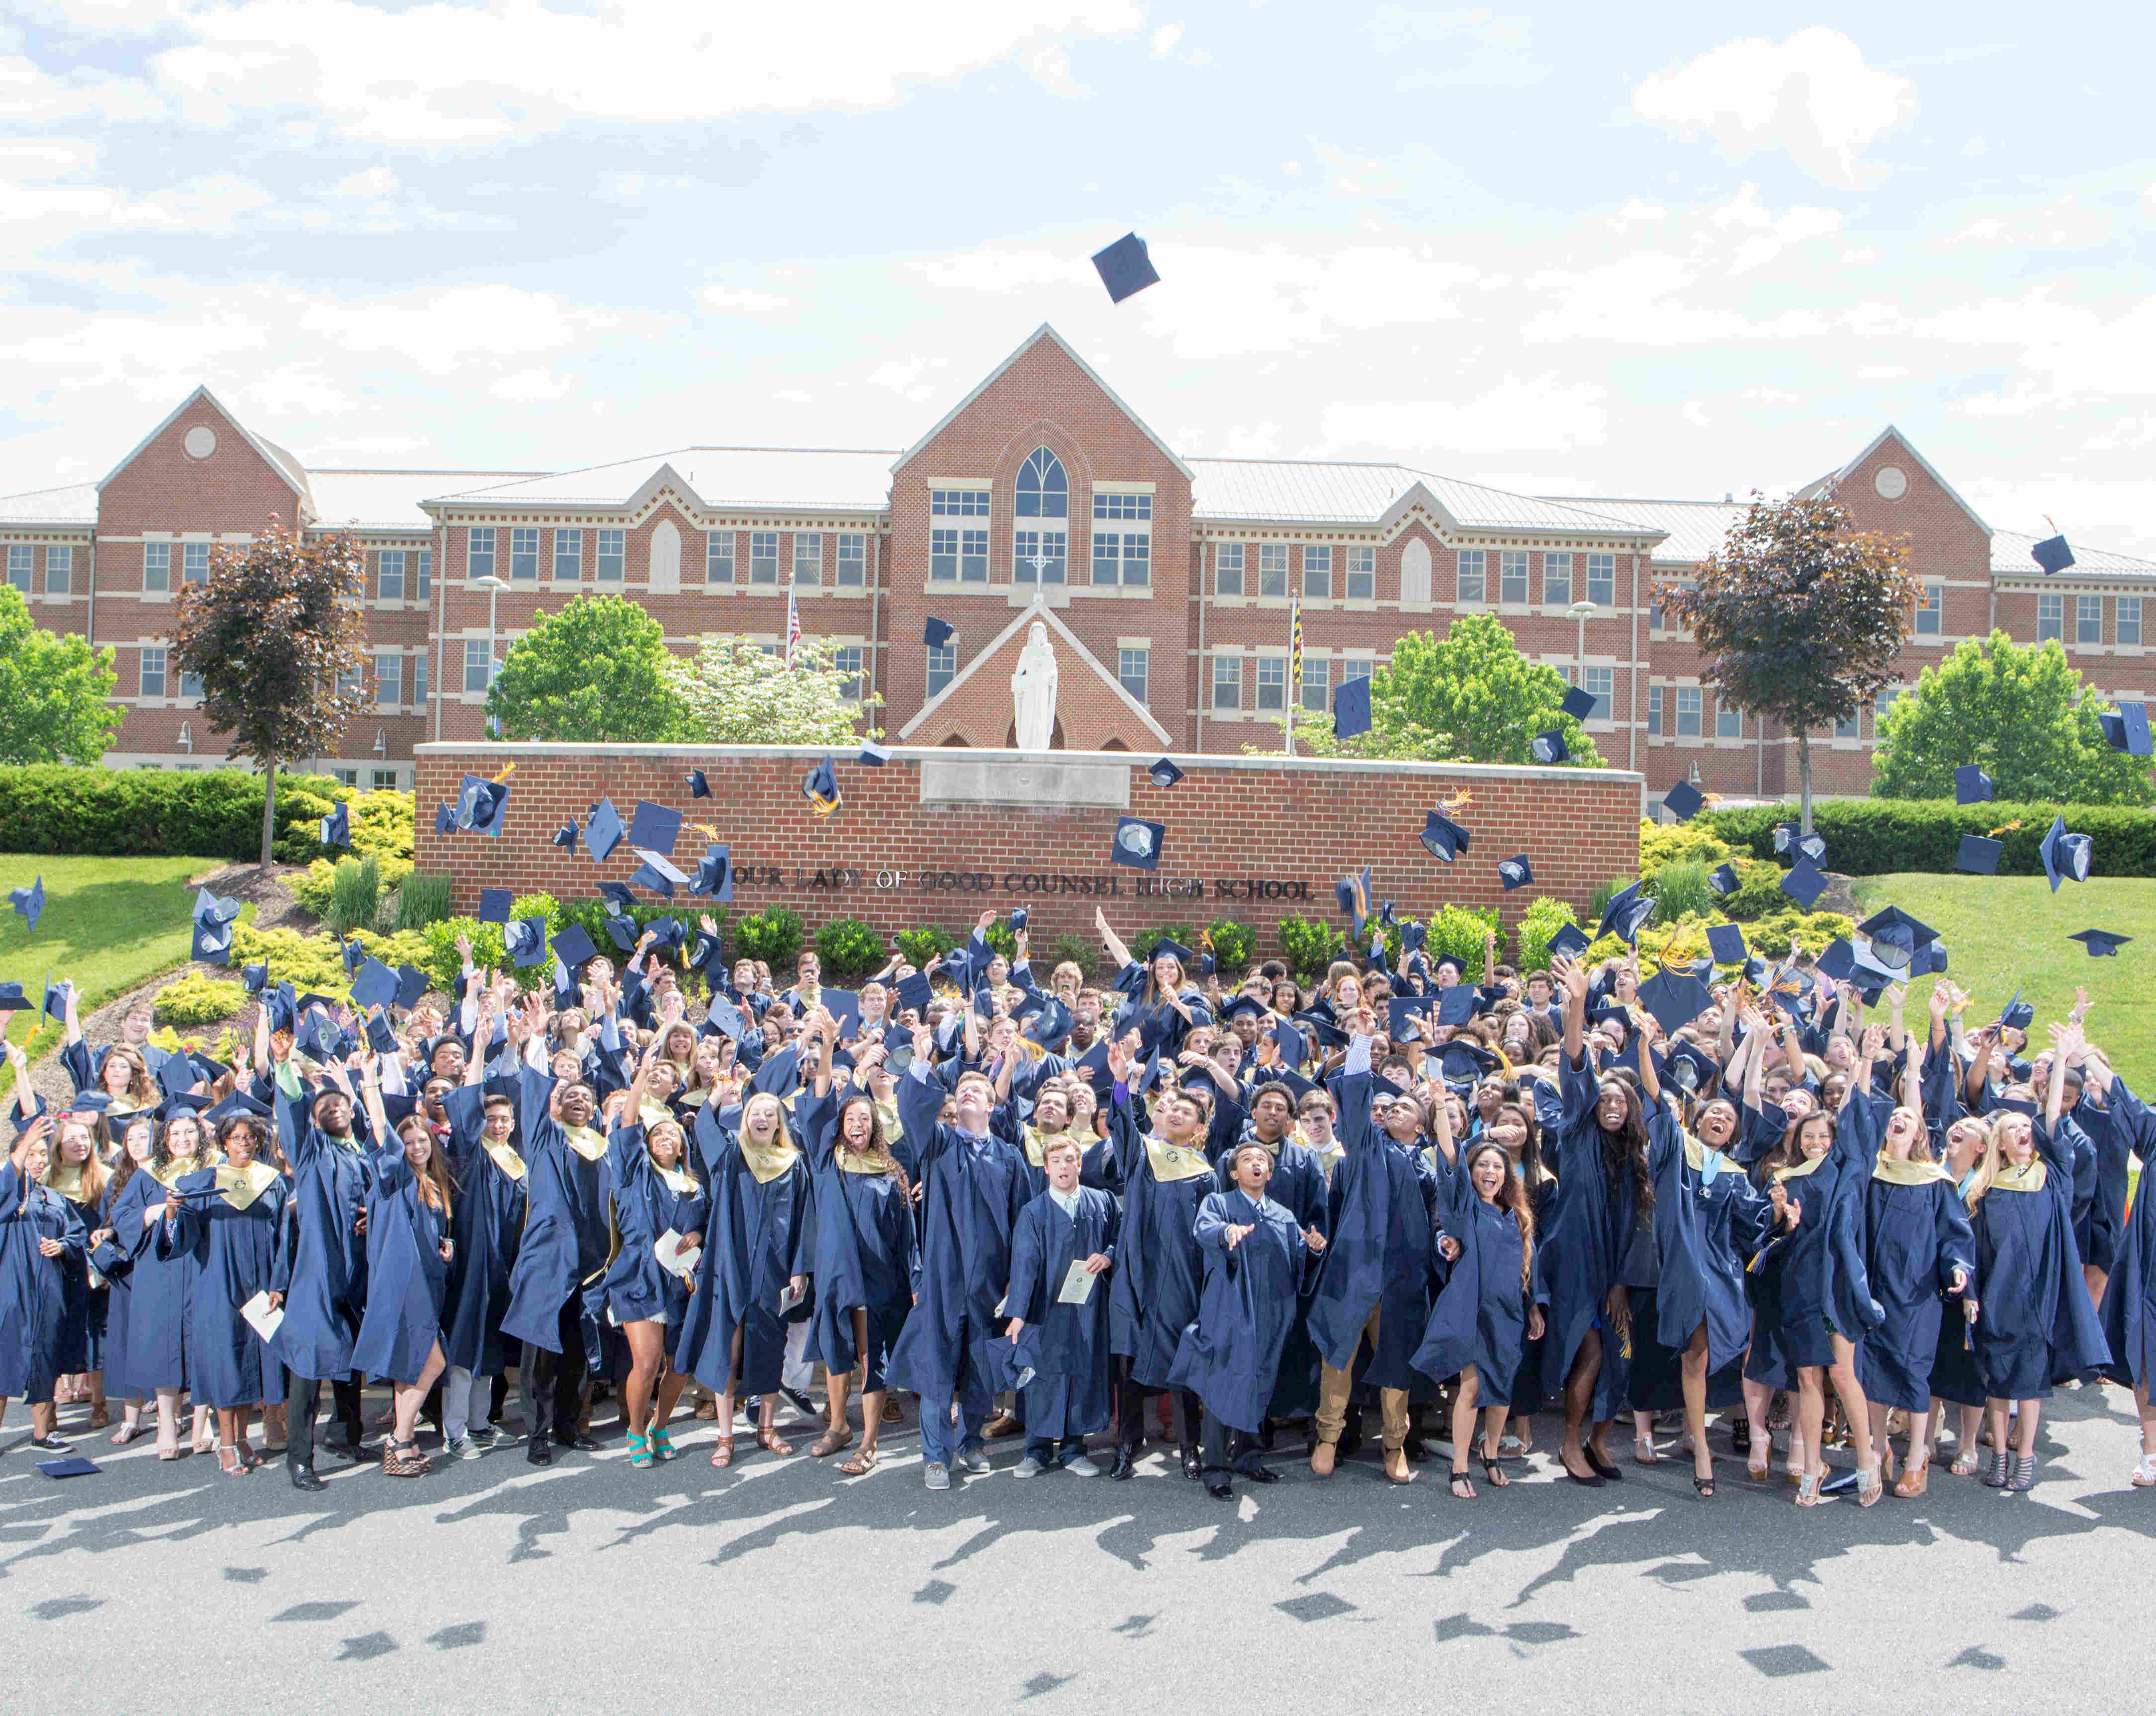 Our Lady of Good Counsel High School Graduation